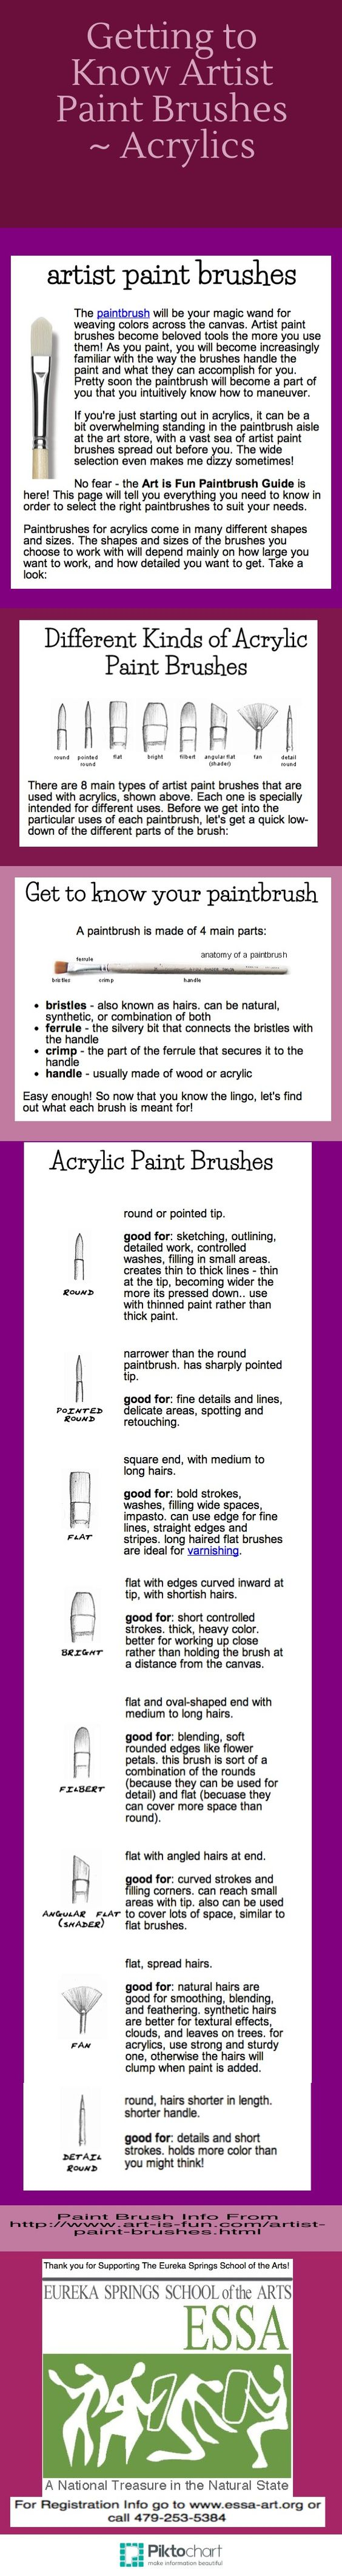 Folk art acrylic paint color chart - Great Tips On Getting To Know Acrylic Paint Brushes From Http Www Art Is Fun Com Artist Paint Brushes Html Acrylic Painting Pinterest Acrylic Paint